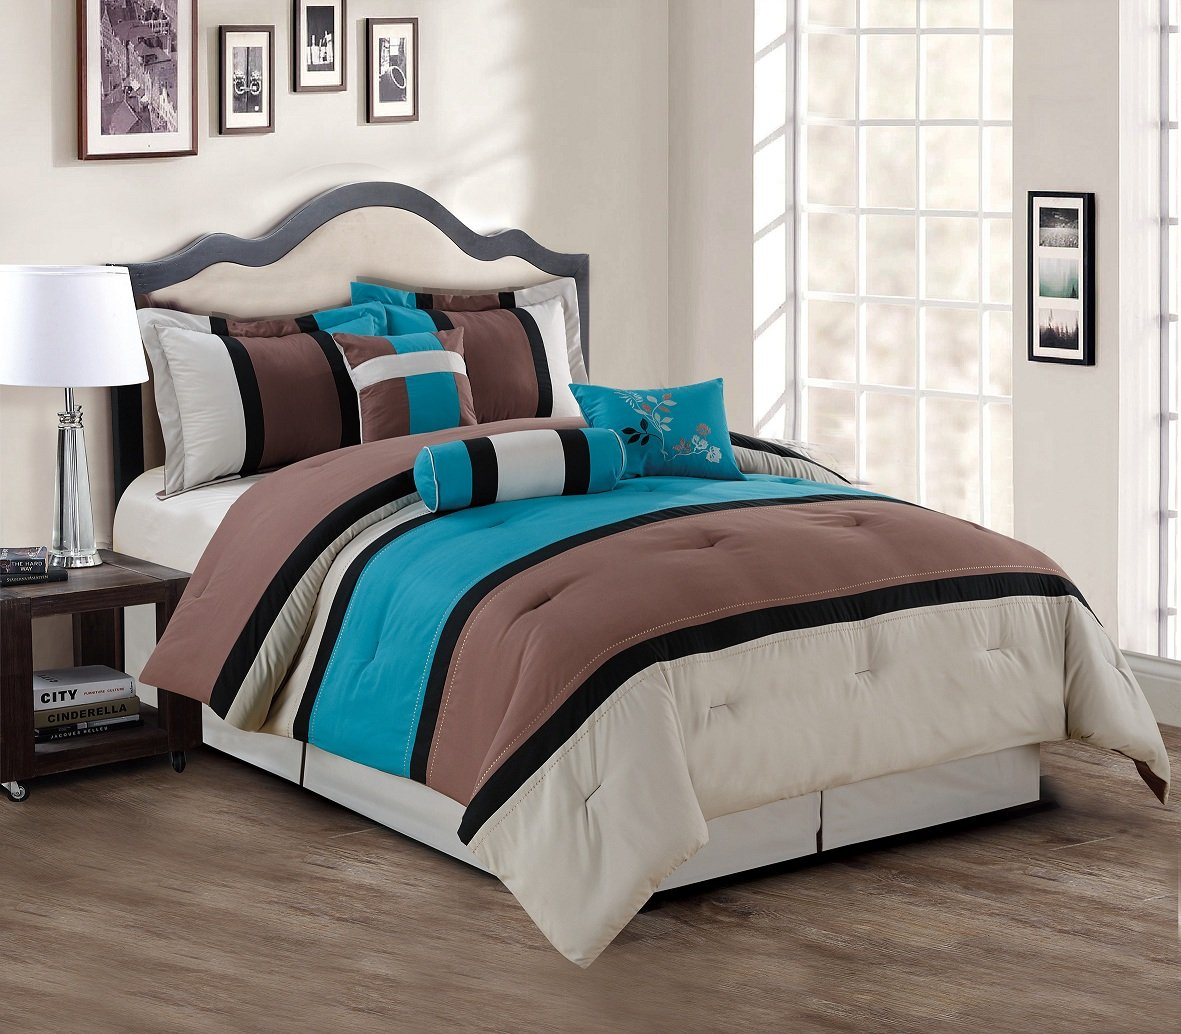 7 Piece Teal Blue Grey Black Stripe Comforter Set Queen size Bedding